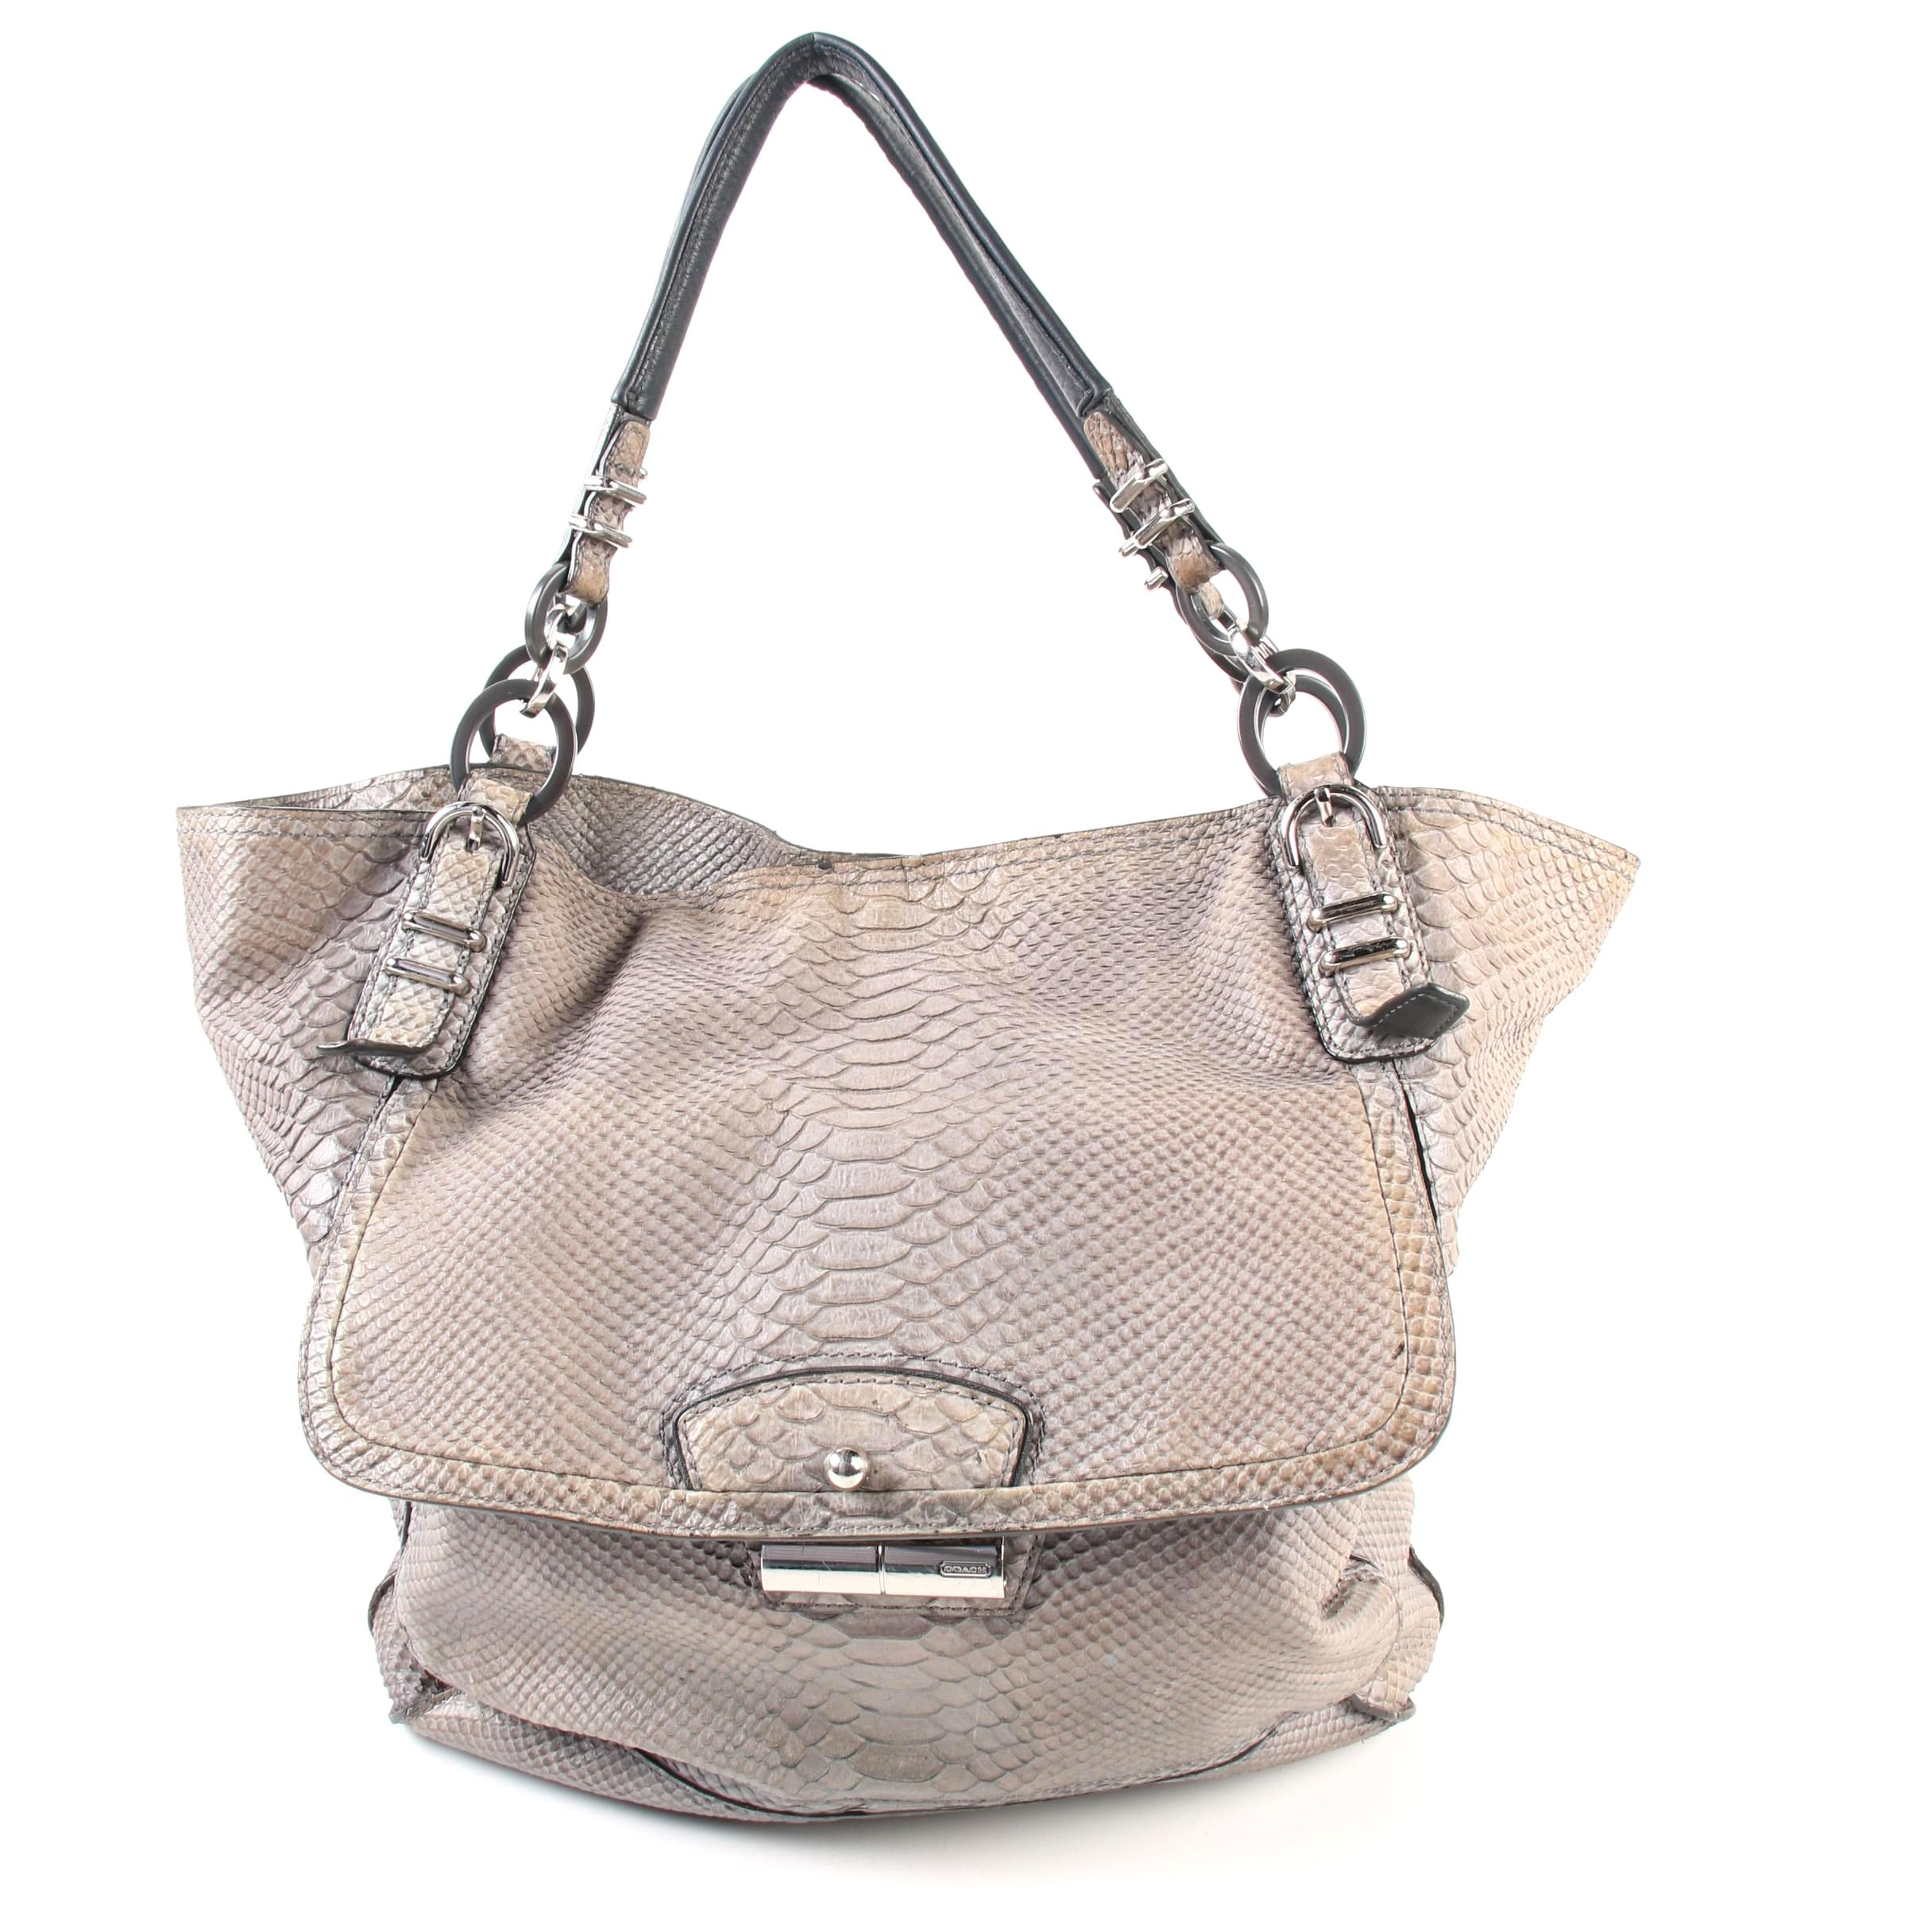 Coach Pinnacle Tote in Gray Python Embossed Leather